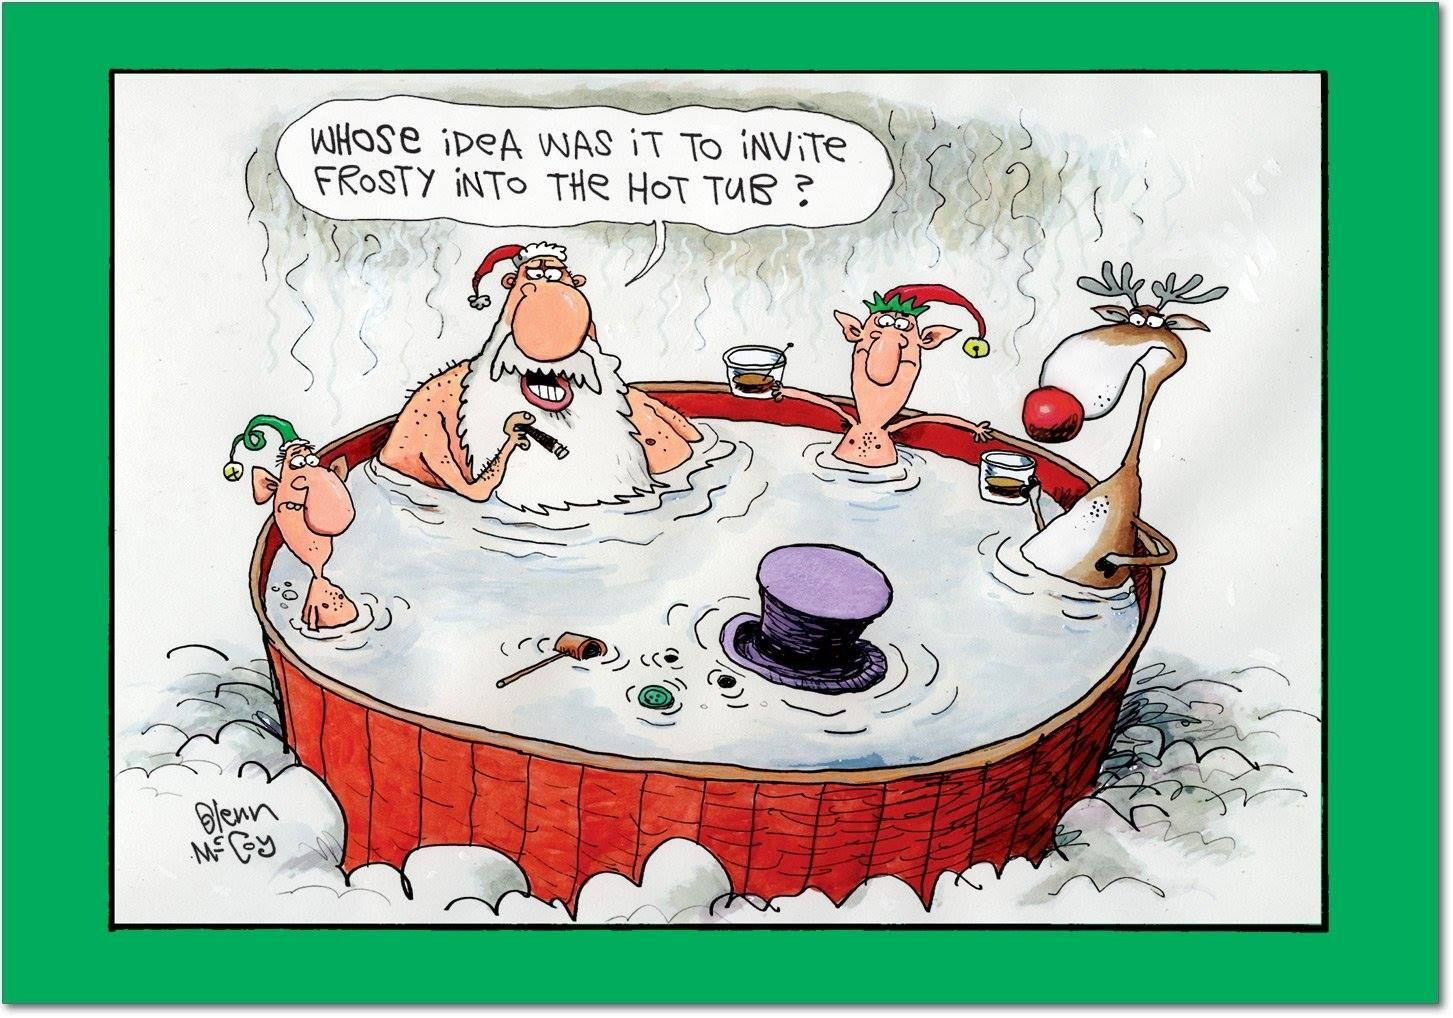 Whose idea was it to invite Frosty into the hot tub